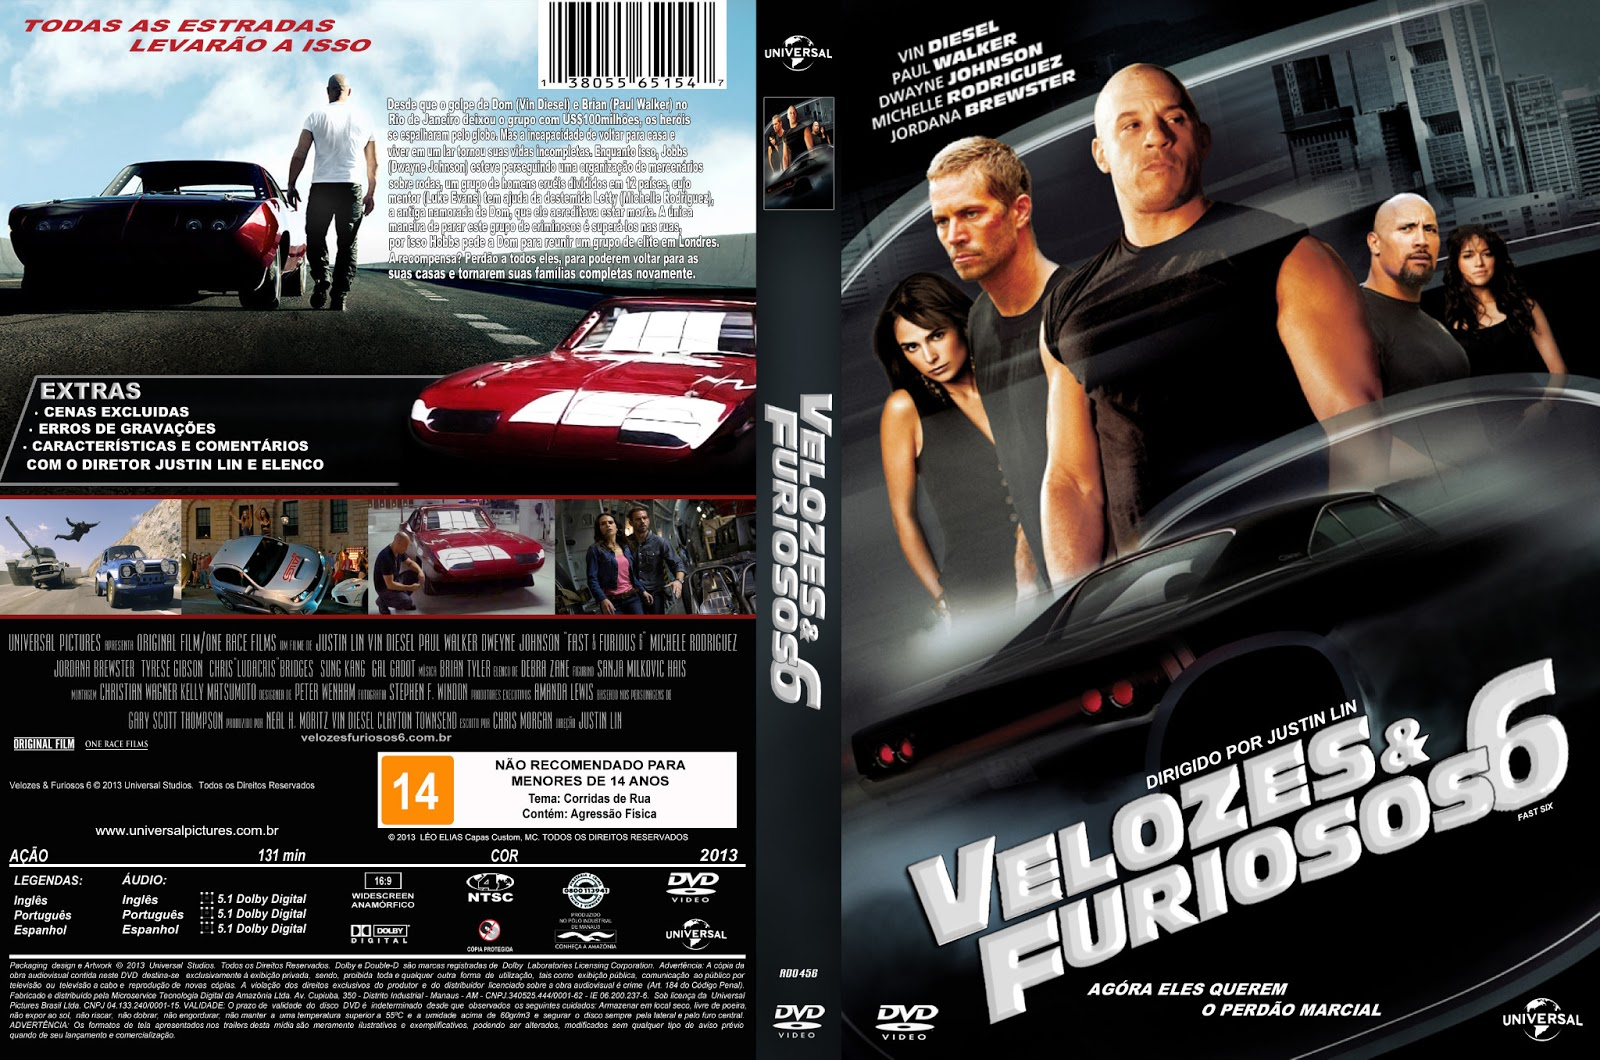 Download de velozes e furiosos 1 legendado